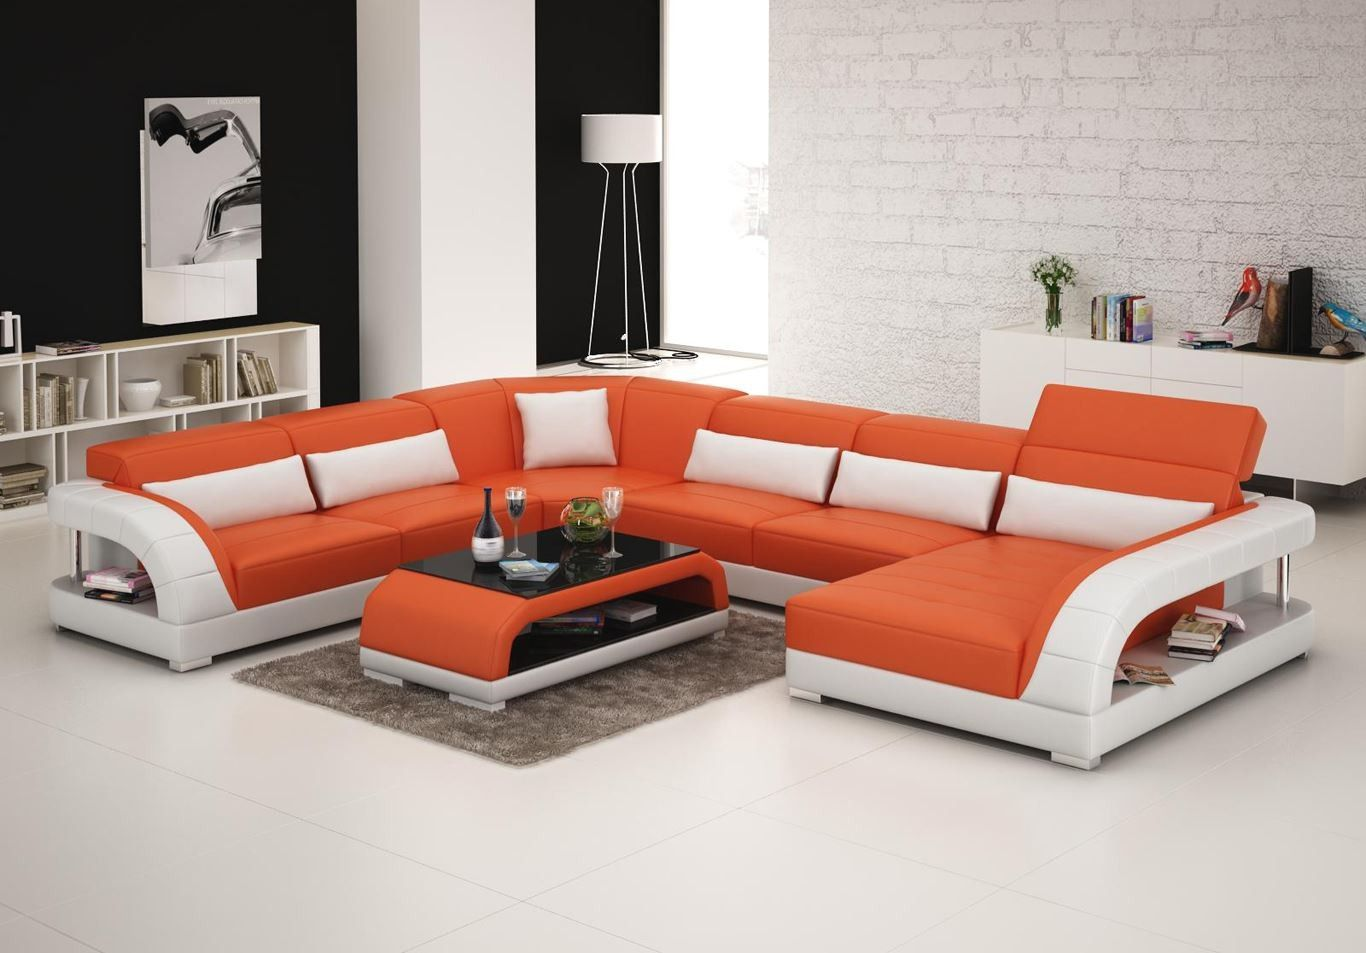 Viper Sectional Sofa From Opulent Items Ihso03125 Modern Sofa In